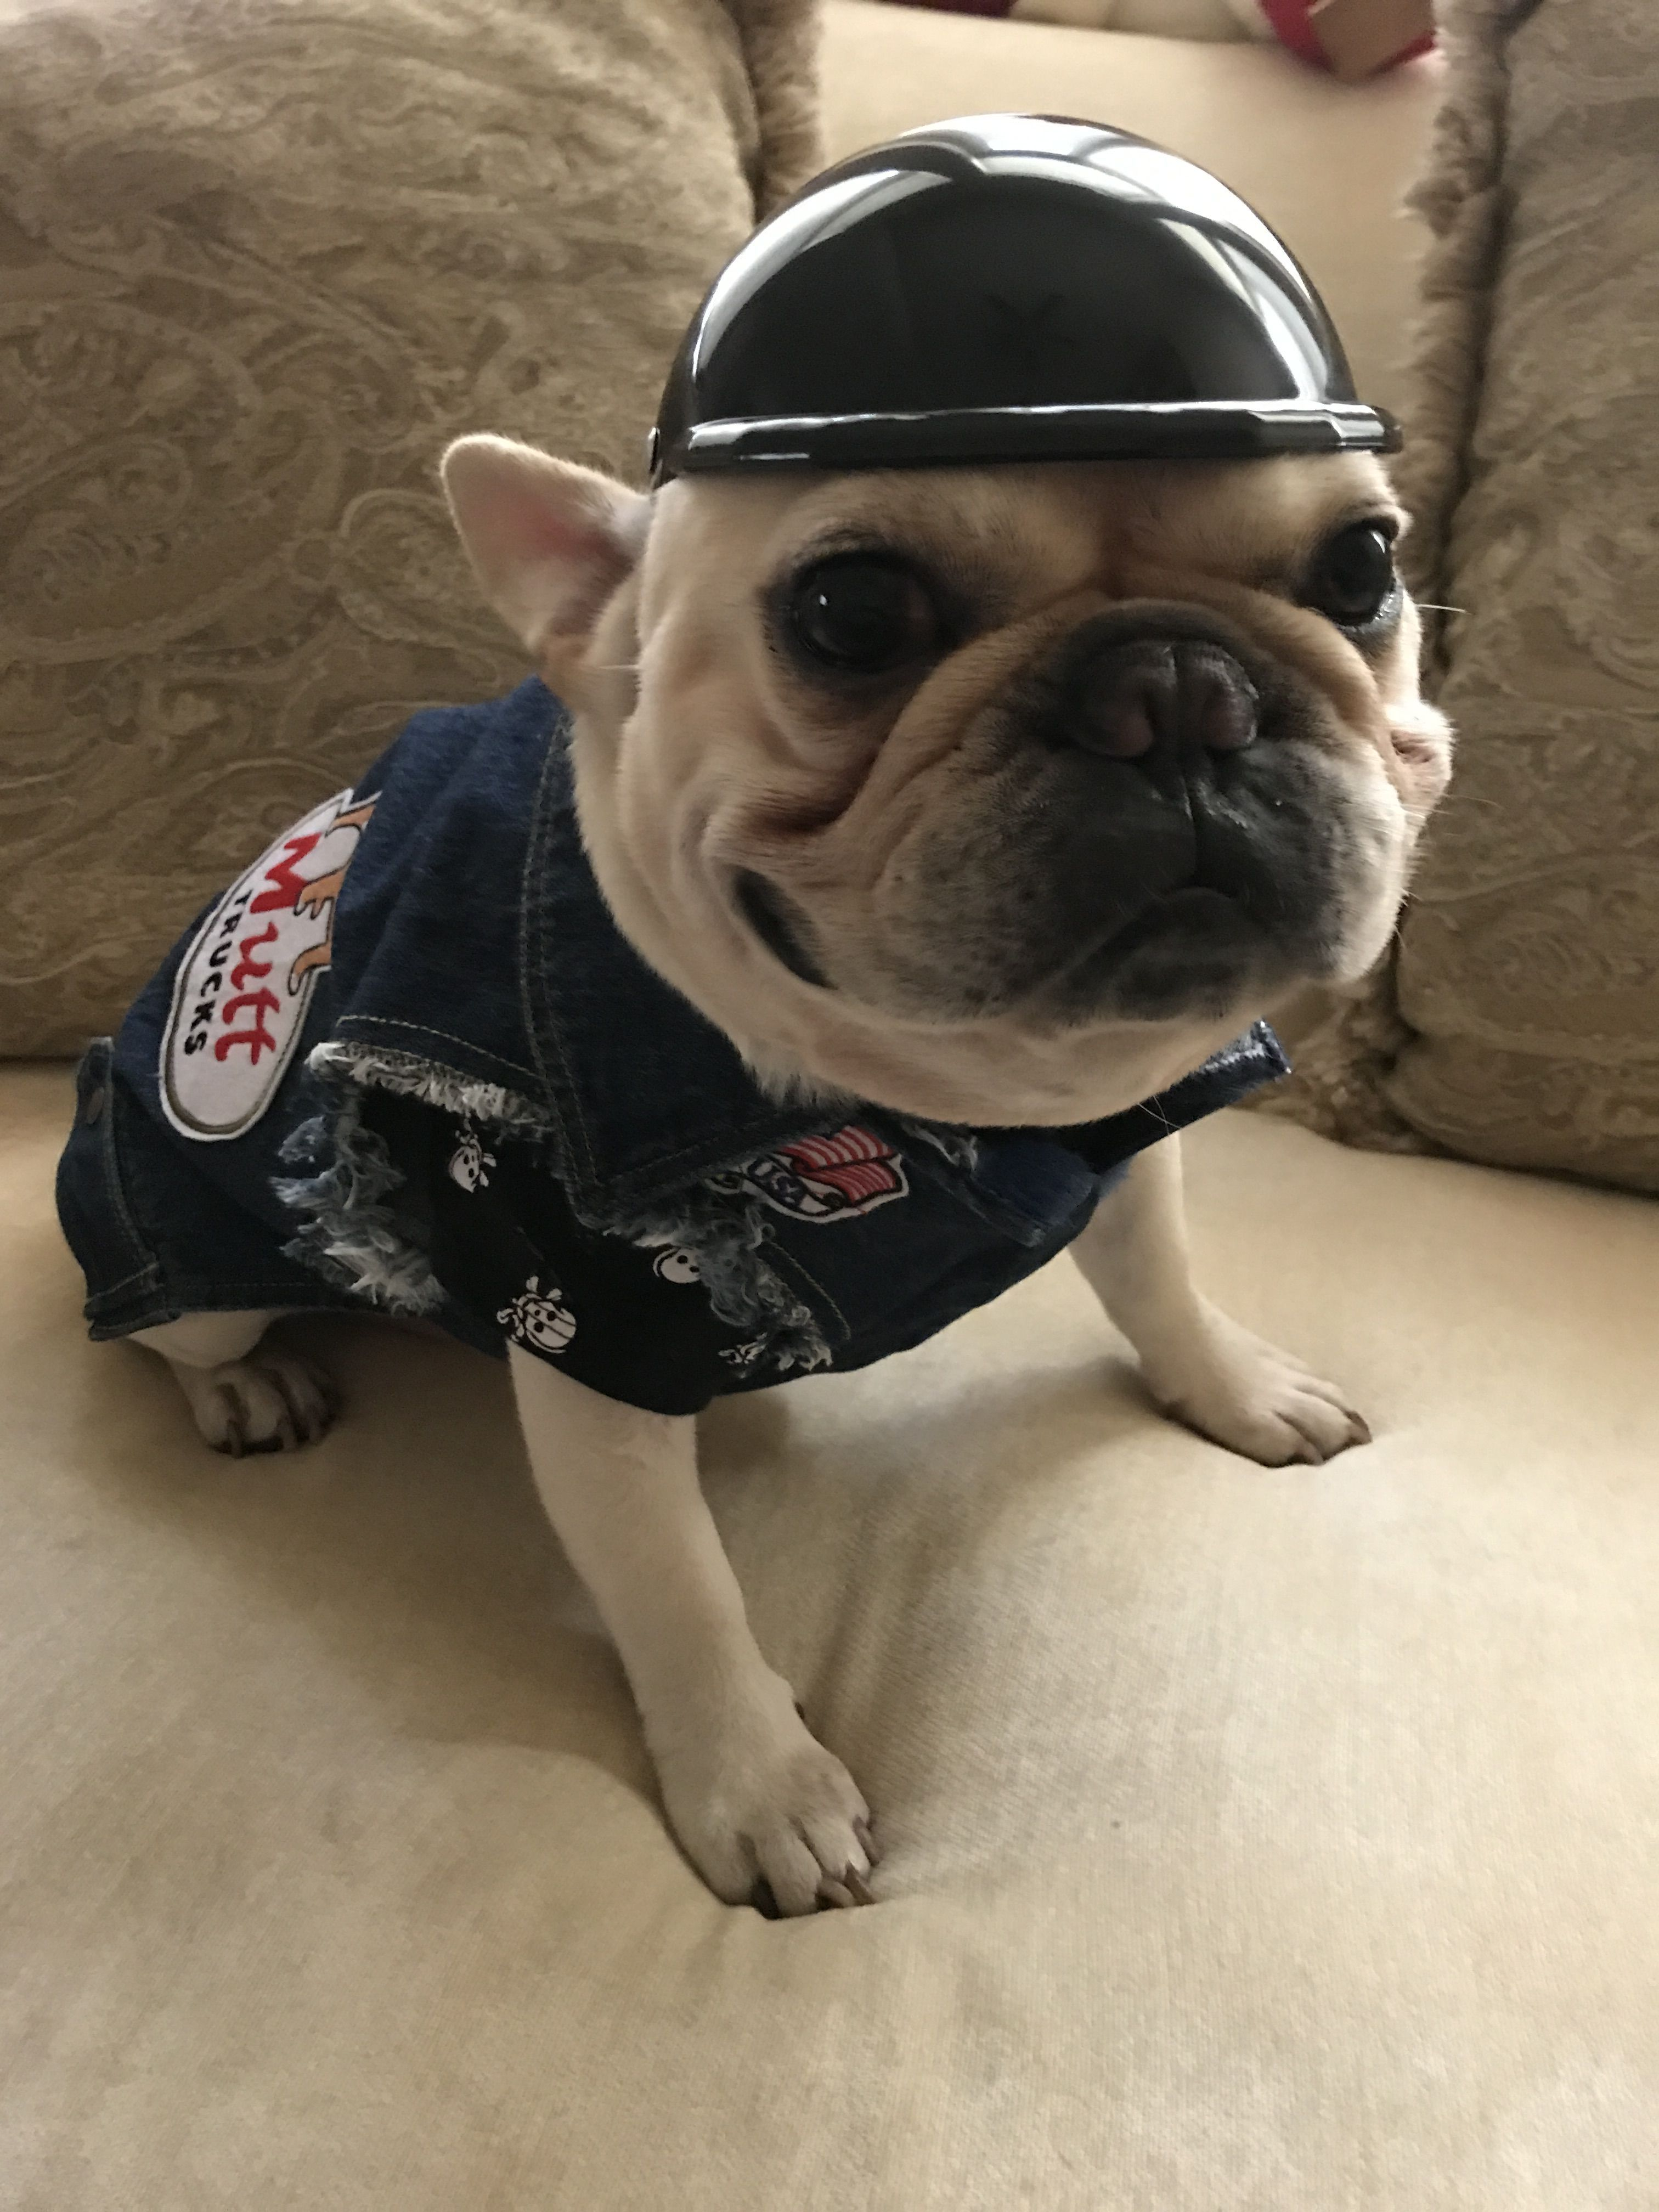 Mom That S A Bowl Not A Helmet Tell Me You Know That Adoptpug